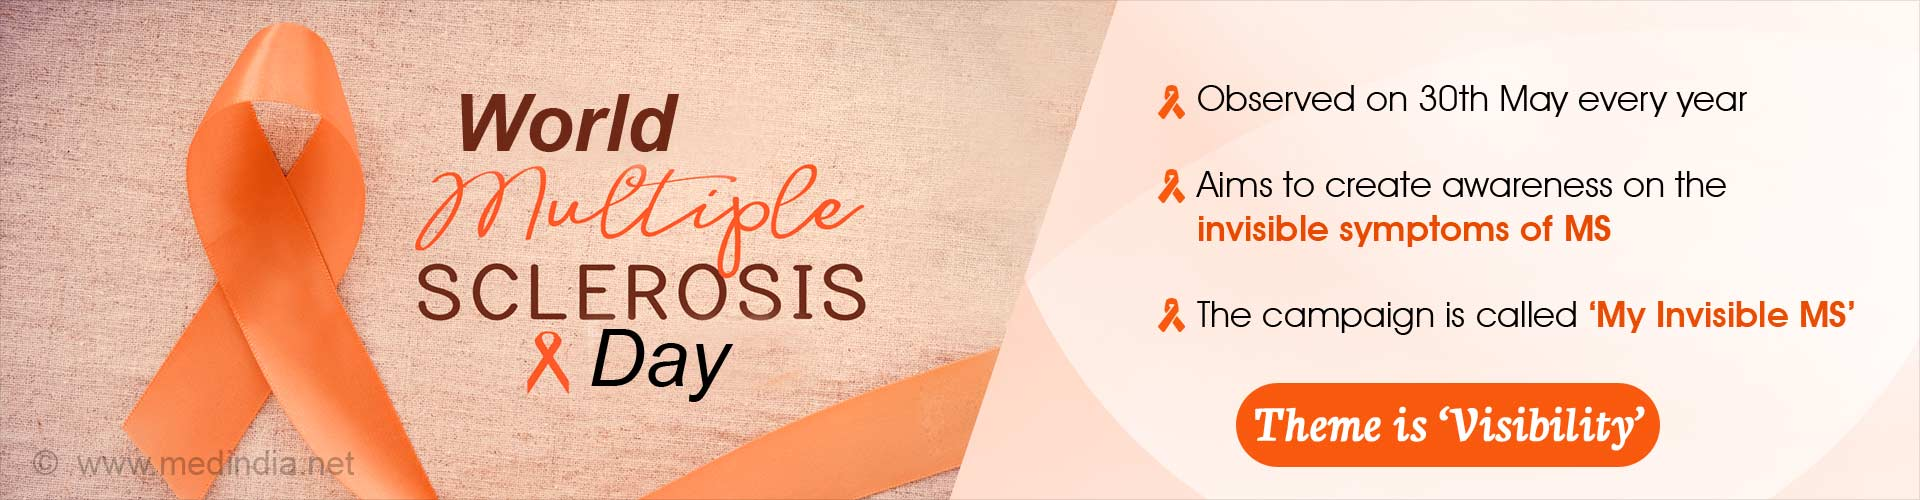 World Multiple Sclerosis Day: Increasing MS 'Visibility' for Everyone